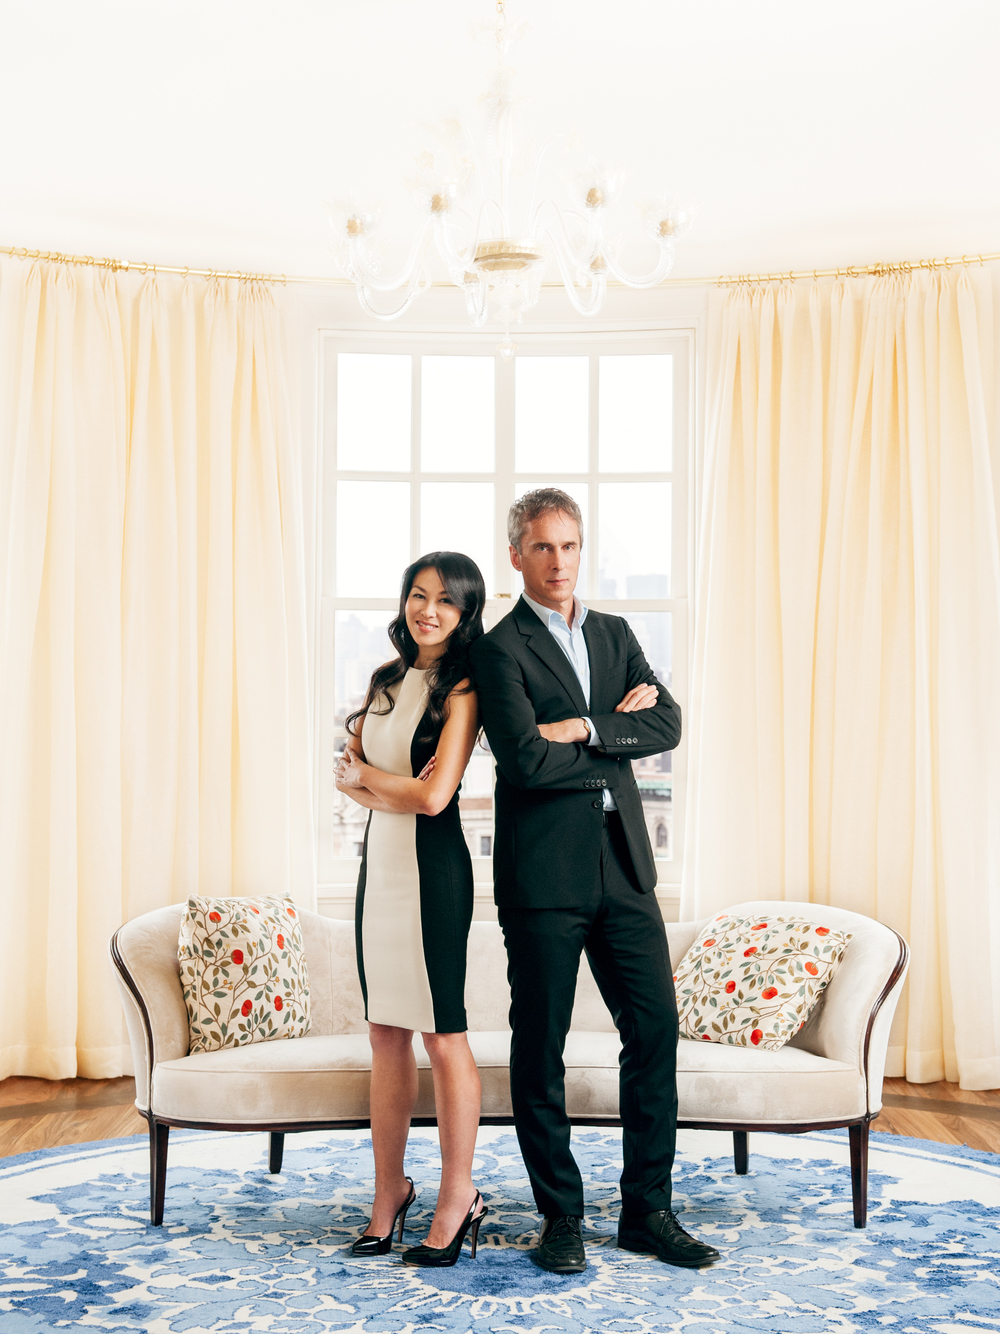 """Amy Chua & Jed Rubenfeld, Authors of """"The Triple Threat""""and """"Battle Hymn of the Tiger Mother""""  Red Magazine UK"""